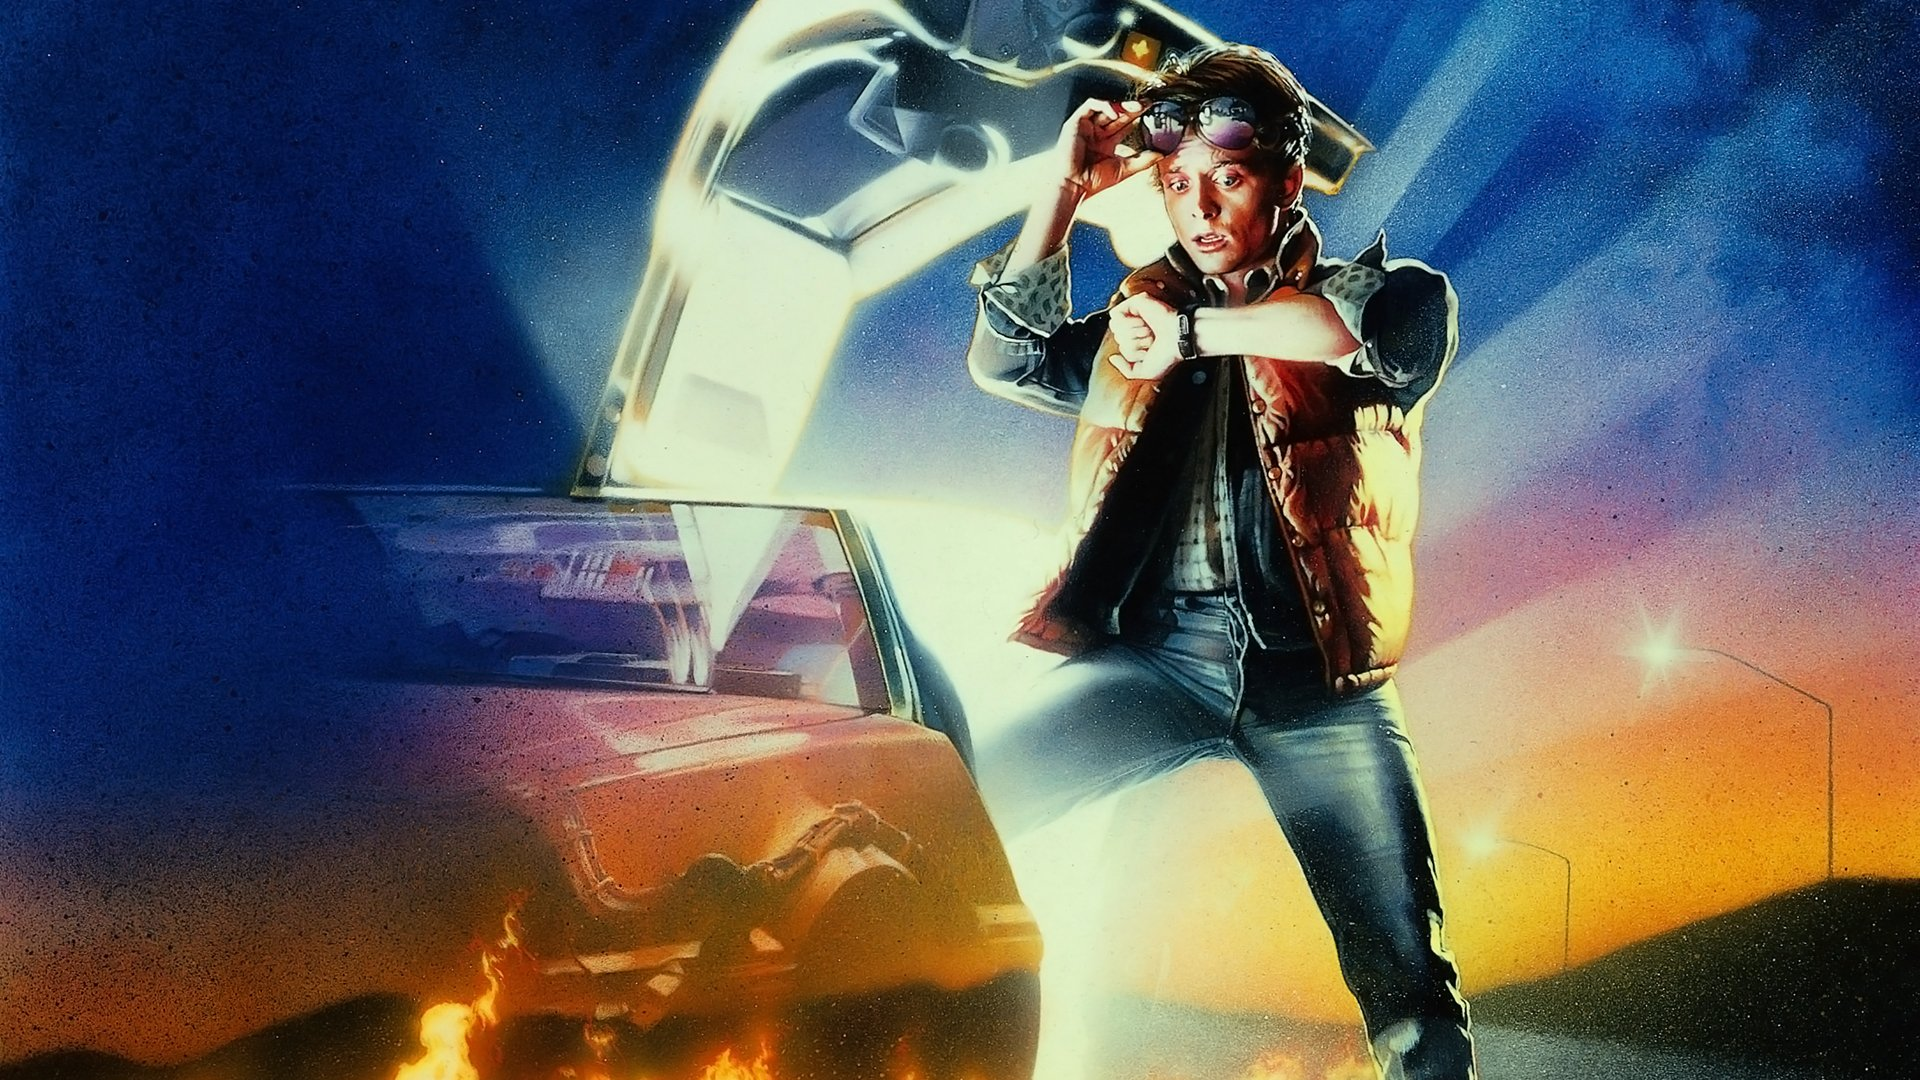 Back-To-The-Future-1920%C3%971080-Back-To-The-Future-iPhone-Adora-wallpaper-wpc5802478